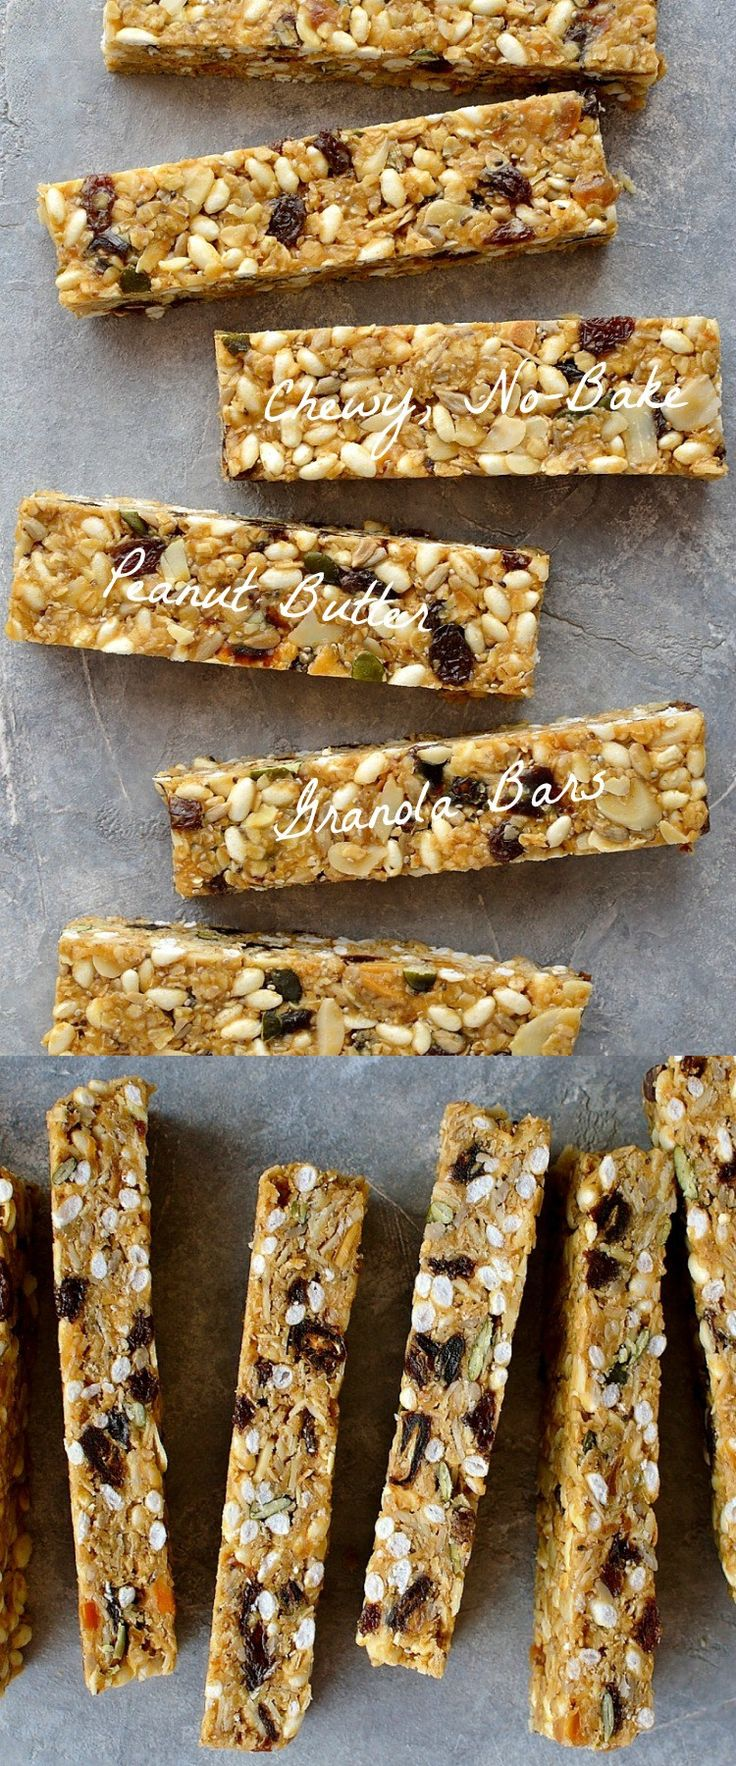 Gotta get Nel to help me convert the recipe... chewy, no-bake peanut butter granola bars - easy to make, versatile snack bars filled with oats, seeds, nuts and dried fruit.